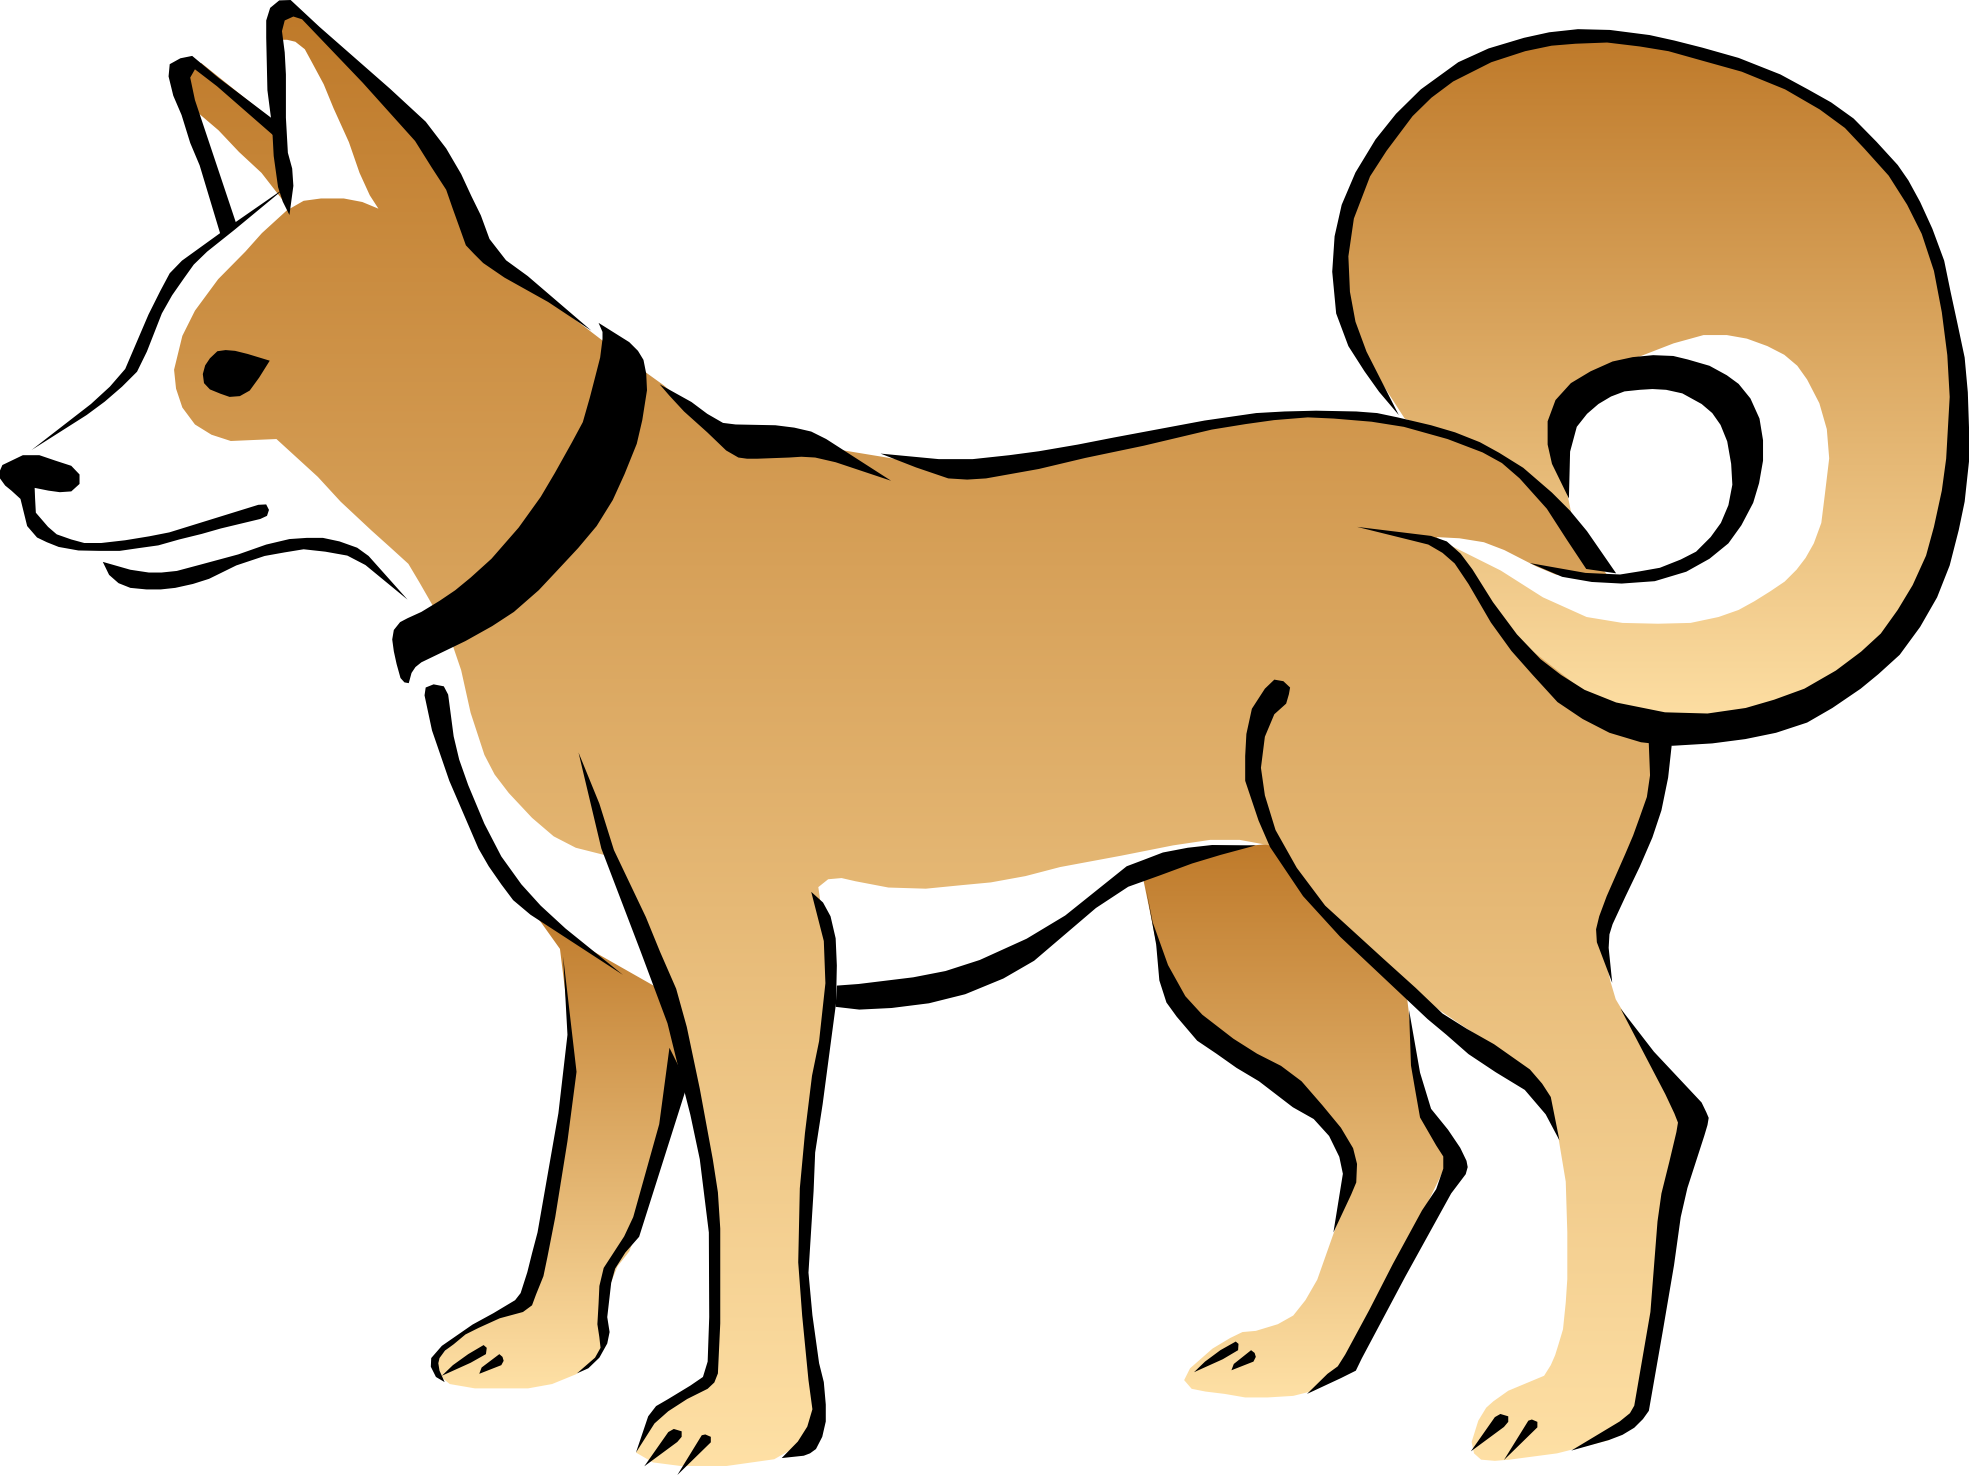 Lying dog clipart png transparent download Cute Dog And Cat Clip Art | Clipart Panda - Free Clipart Images ... png transparent download